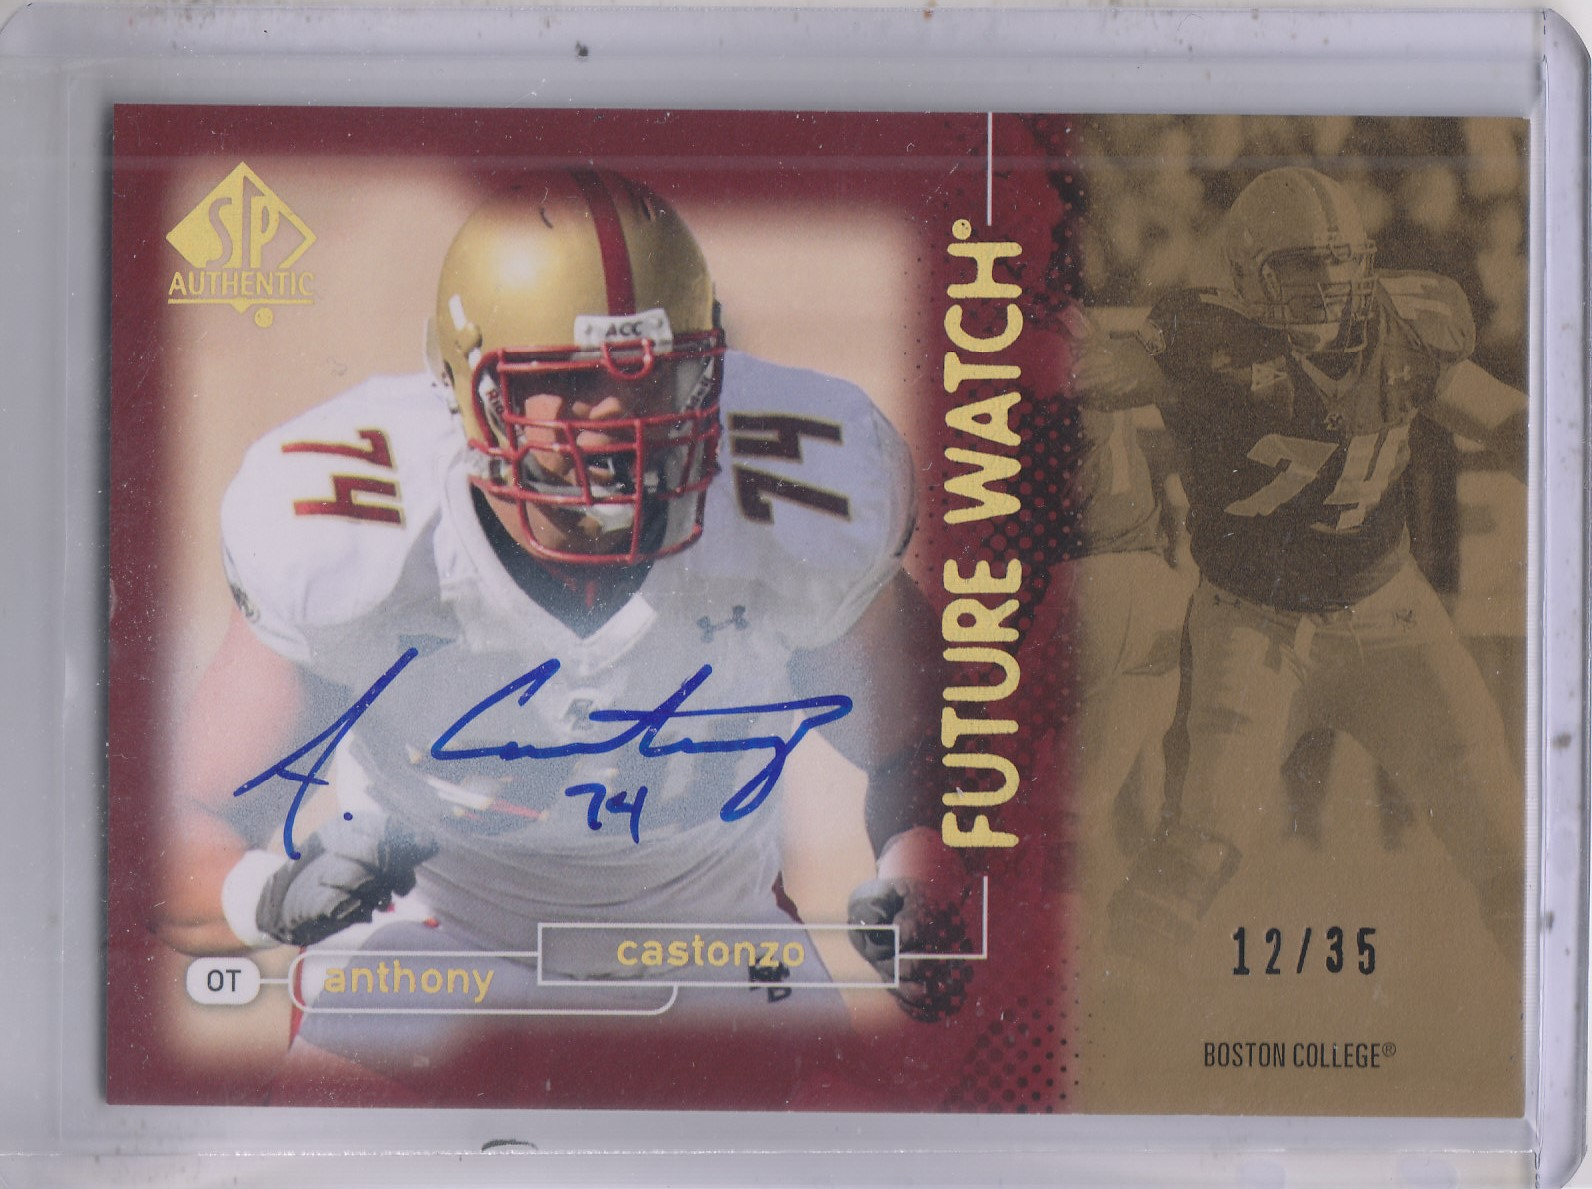 2011 SP Authentic Autographs Gold #120 Anthony Castonzo FW/35